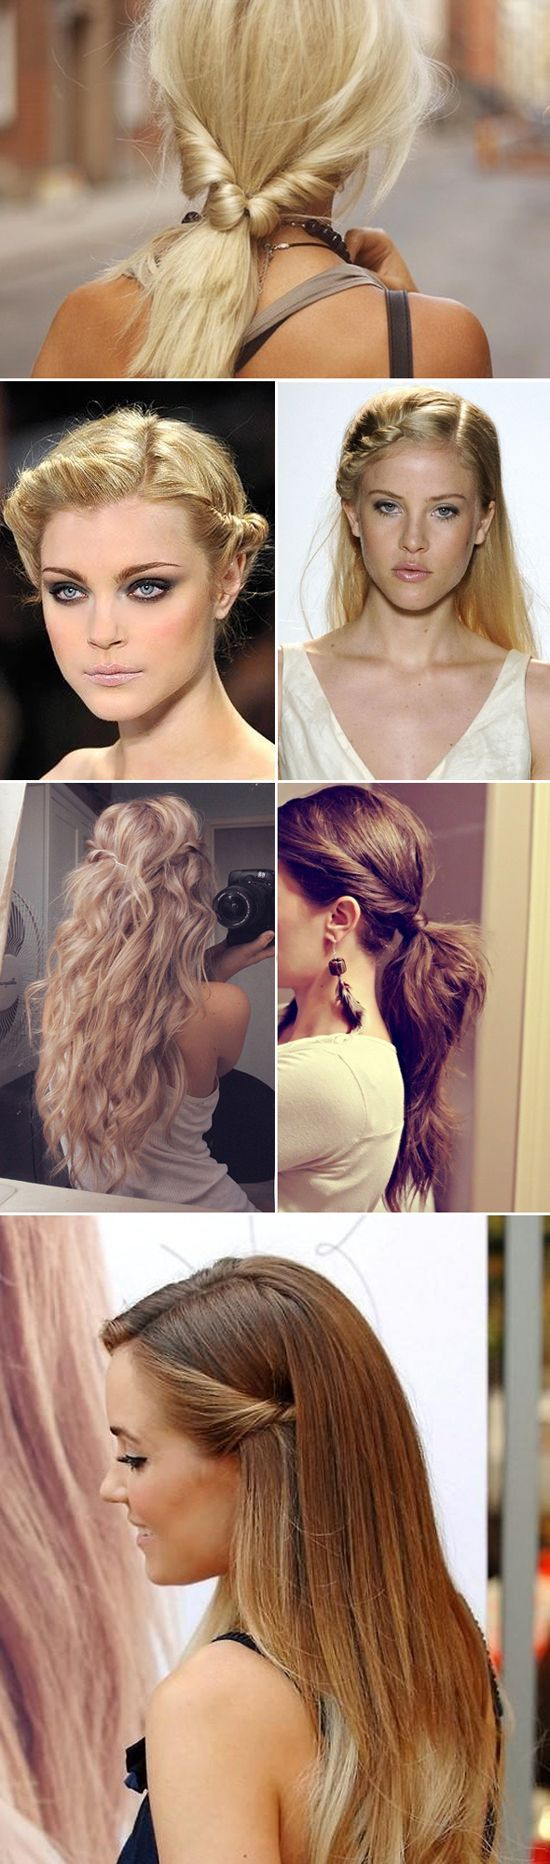 Twistytrend beauty pinterest hair style hair and beauty and